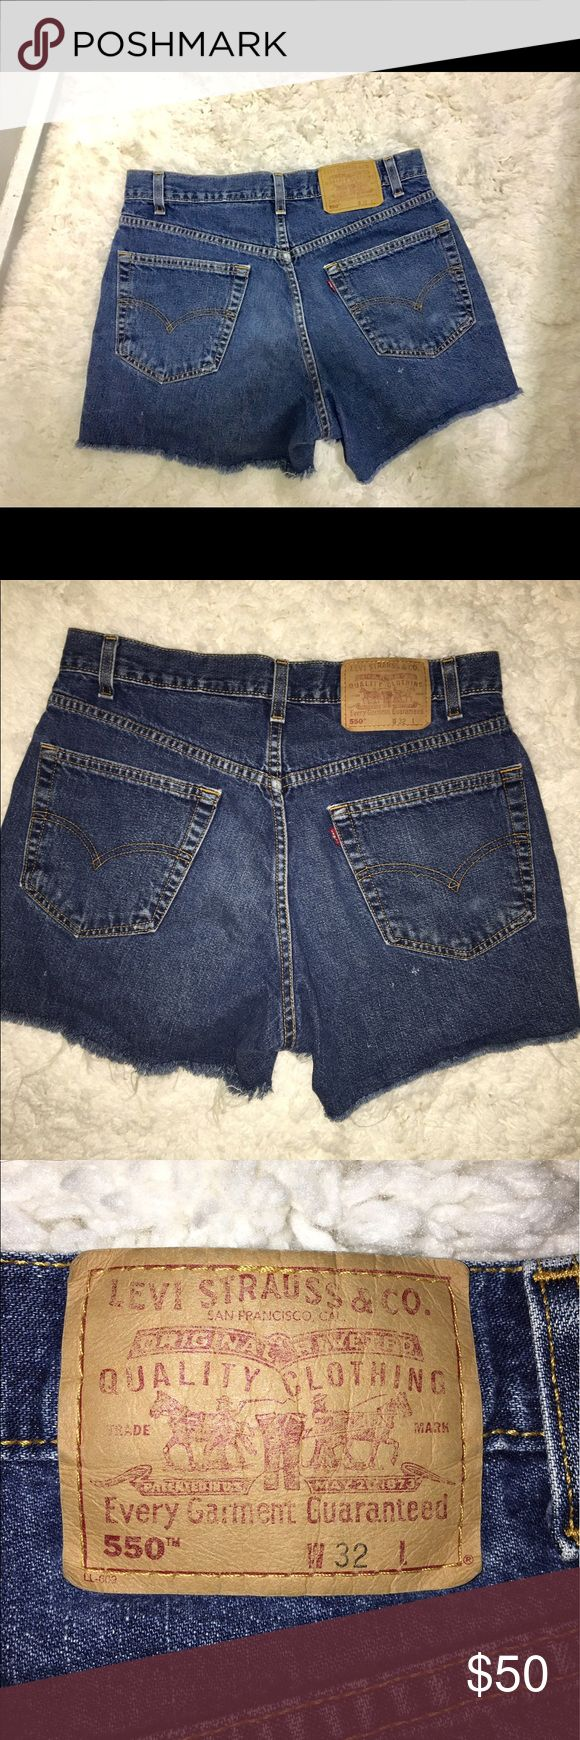 """LEVIS HIGH RISE DENIM SHORTS💕 SUMMER MUST HAVE. TOO BIG ON ME! Very high rise covers my belly button. No stretch on these. Can be worn as they come for days and rolled up for nights! Look super cute with heels and any top really! Can't go wrong with these 😍 tag says W32, but for reference I am 140 lbs and 5""""3, normally size 6/medium in bottoms from most places and these are too big on me :(  DARK WASH. 💕 MAIN PICTURE IS NOT THE ACTUAL SHORTS😘 PRICE IS NEGOTIABLE MAKE AN OFFER 💜💕 Levi's…"""